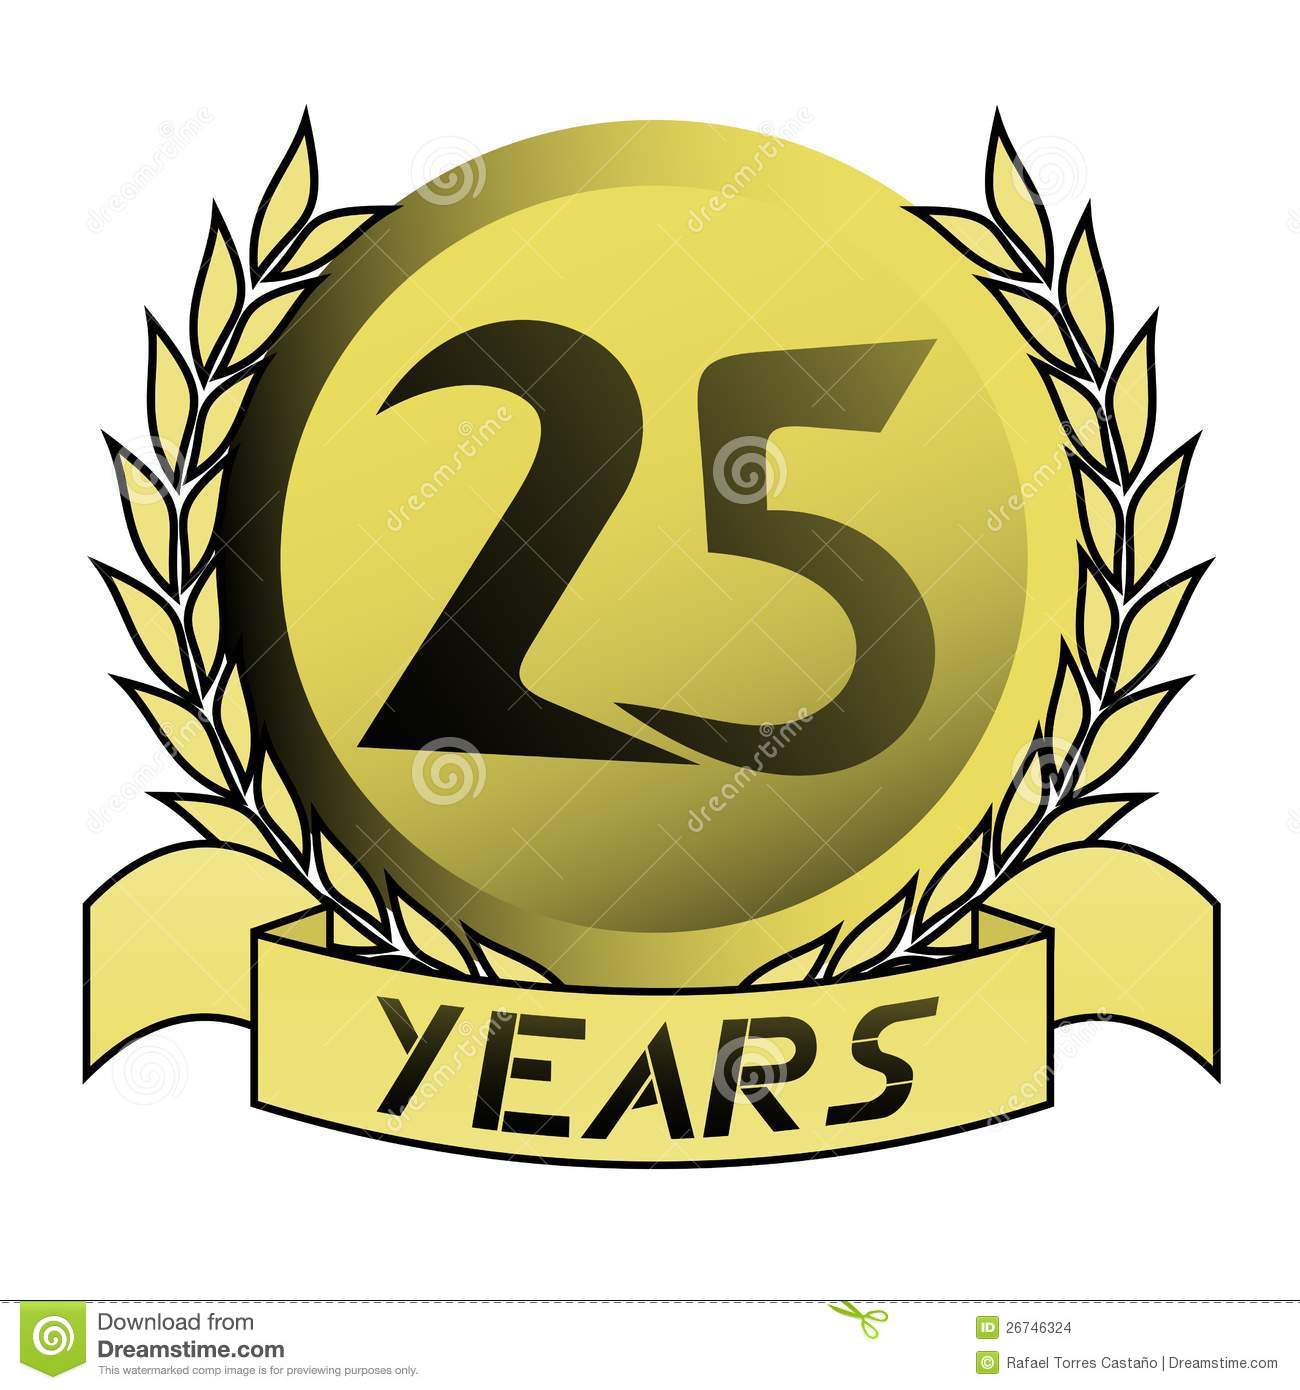 25 Years Of Service Clipart - Clipart Suggest